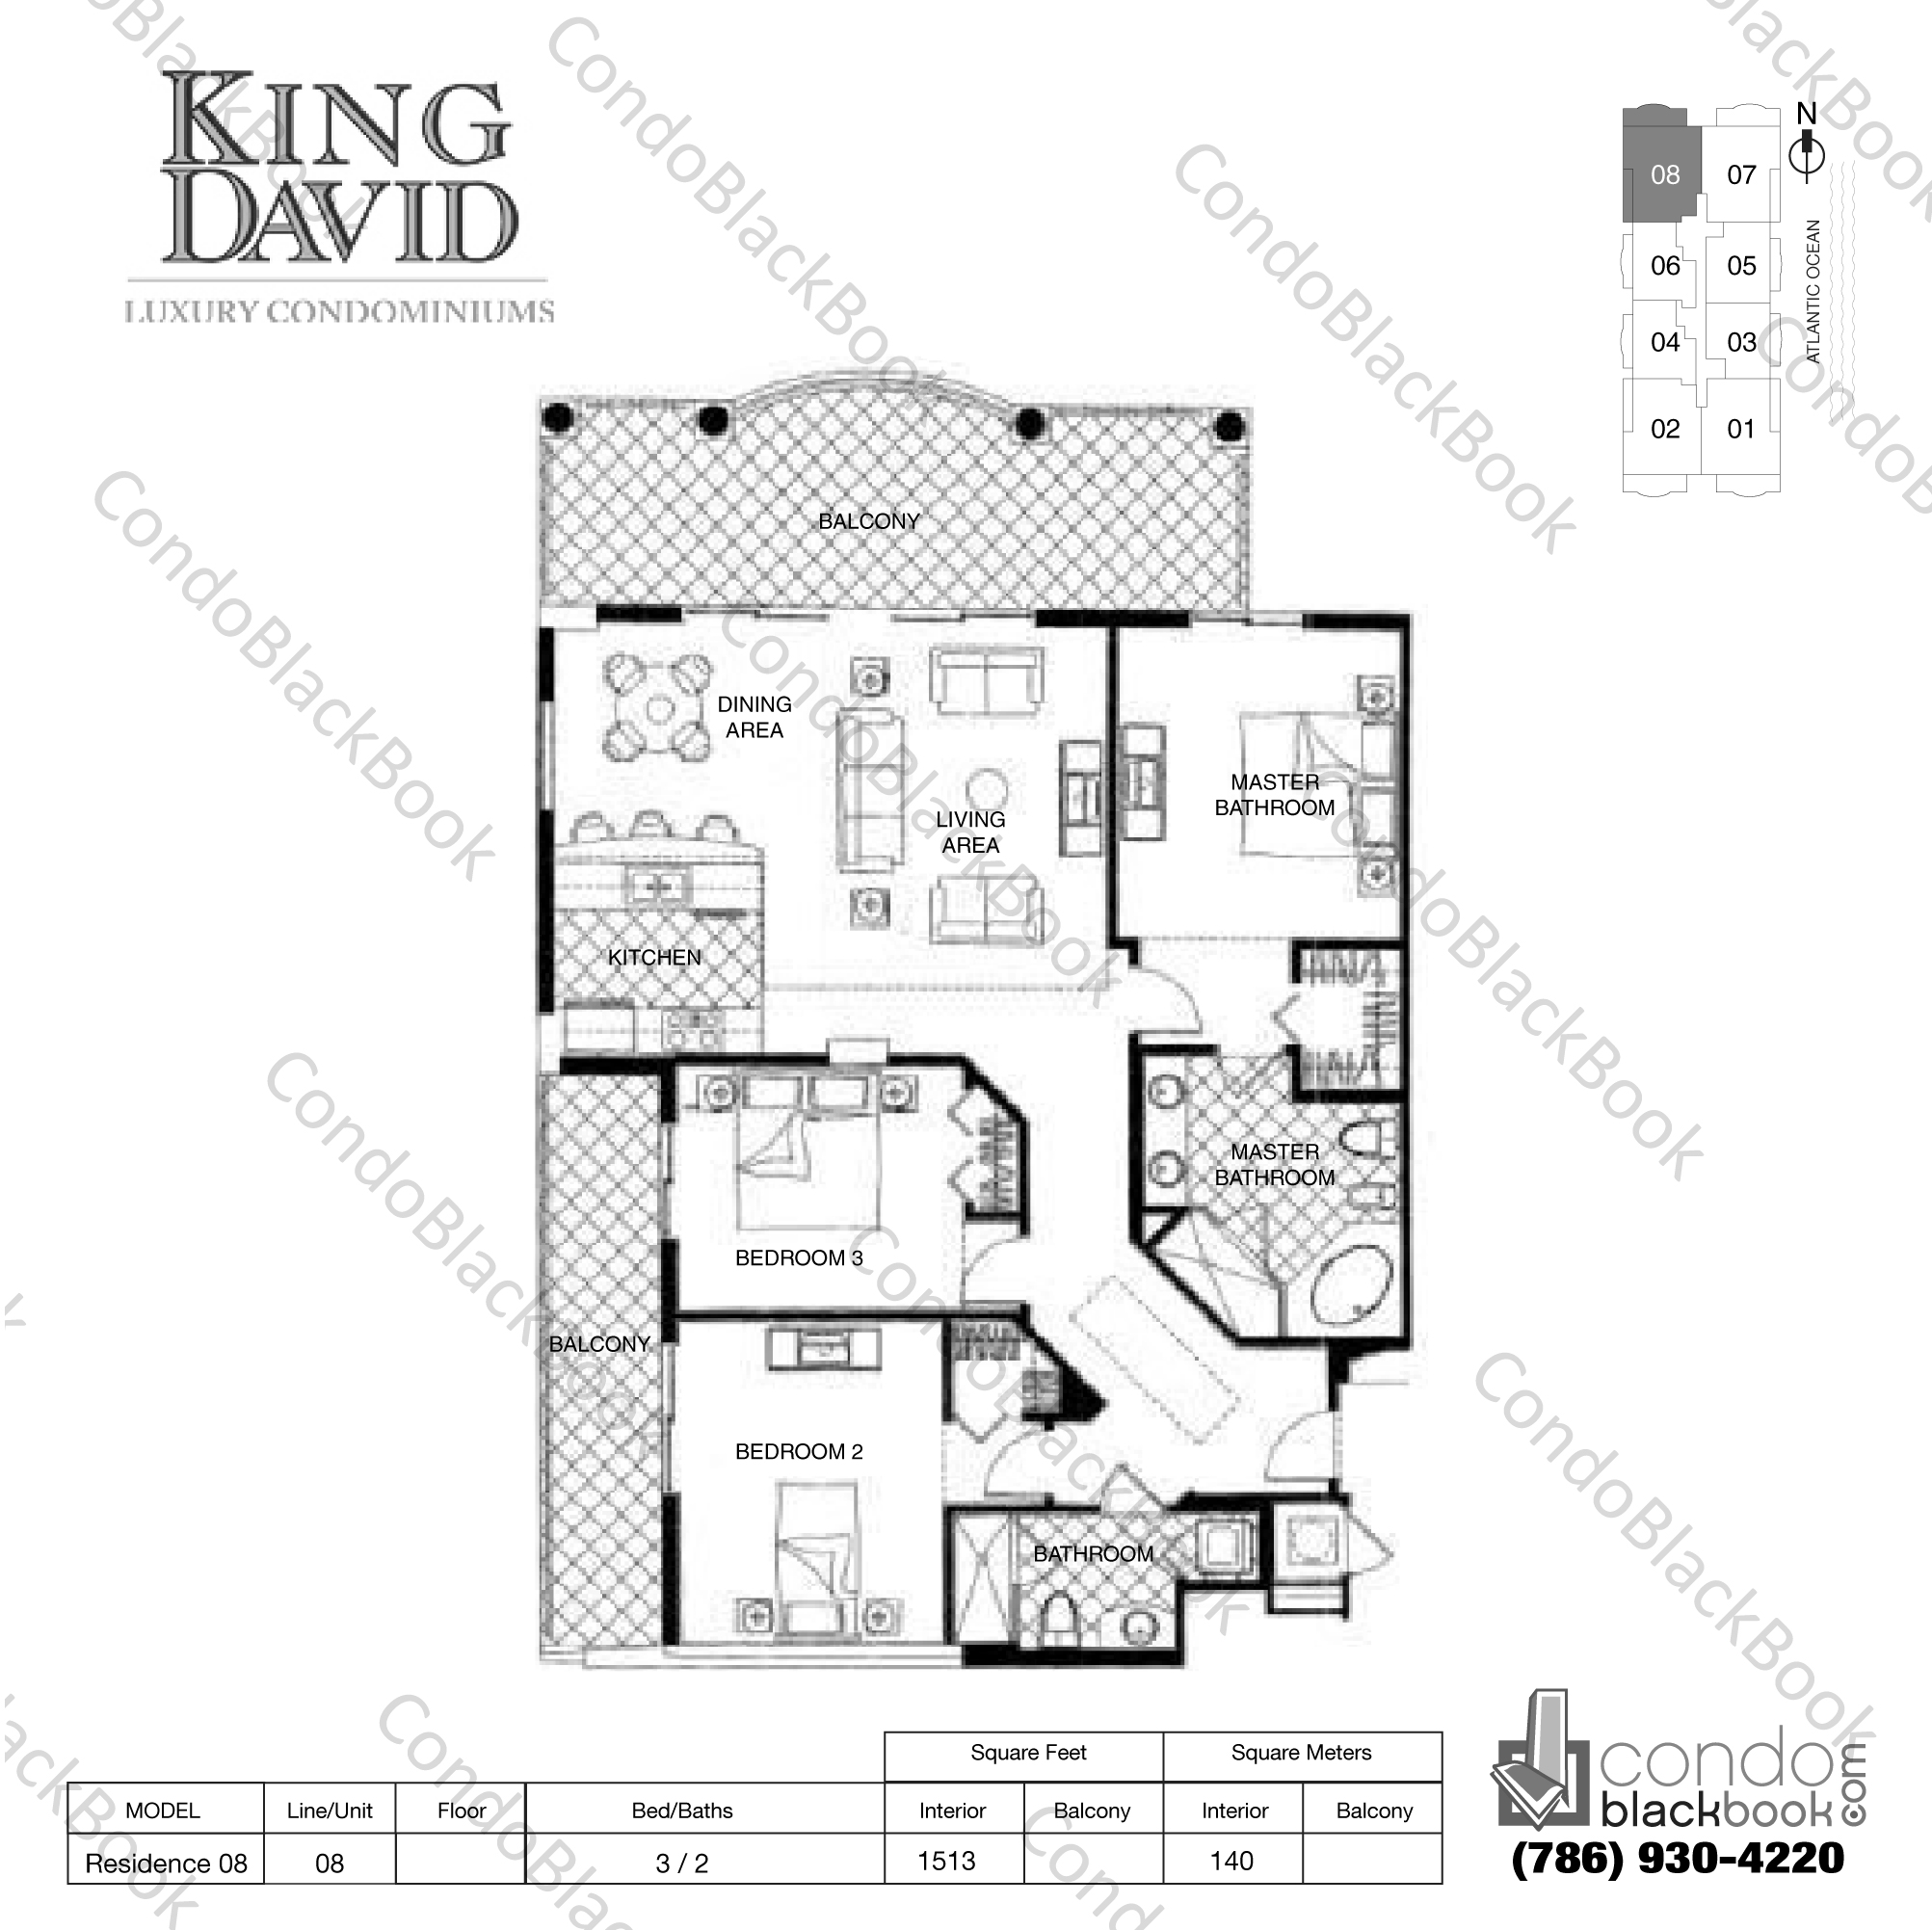 Floor plan for King David Sunny Isles Beach, model Residence 08, line 08, 3 / 2 bedrooms, 1513 sq ft